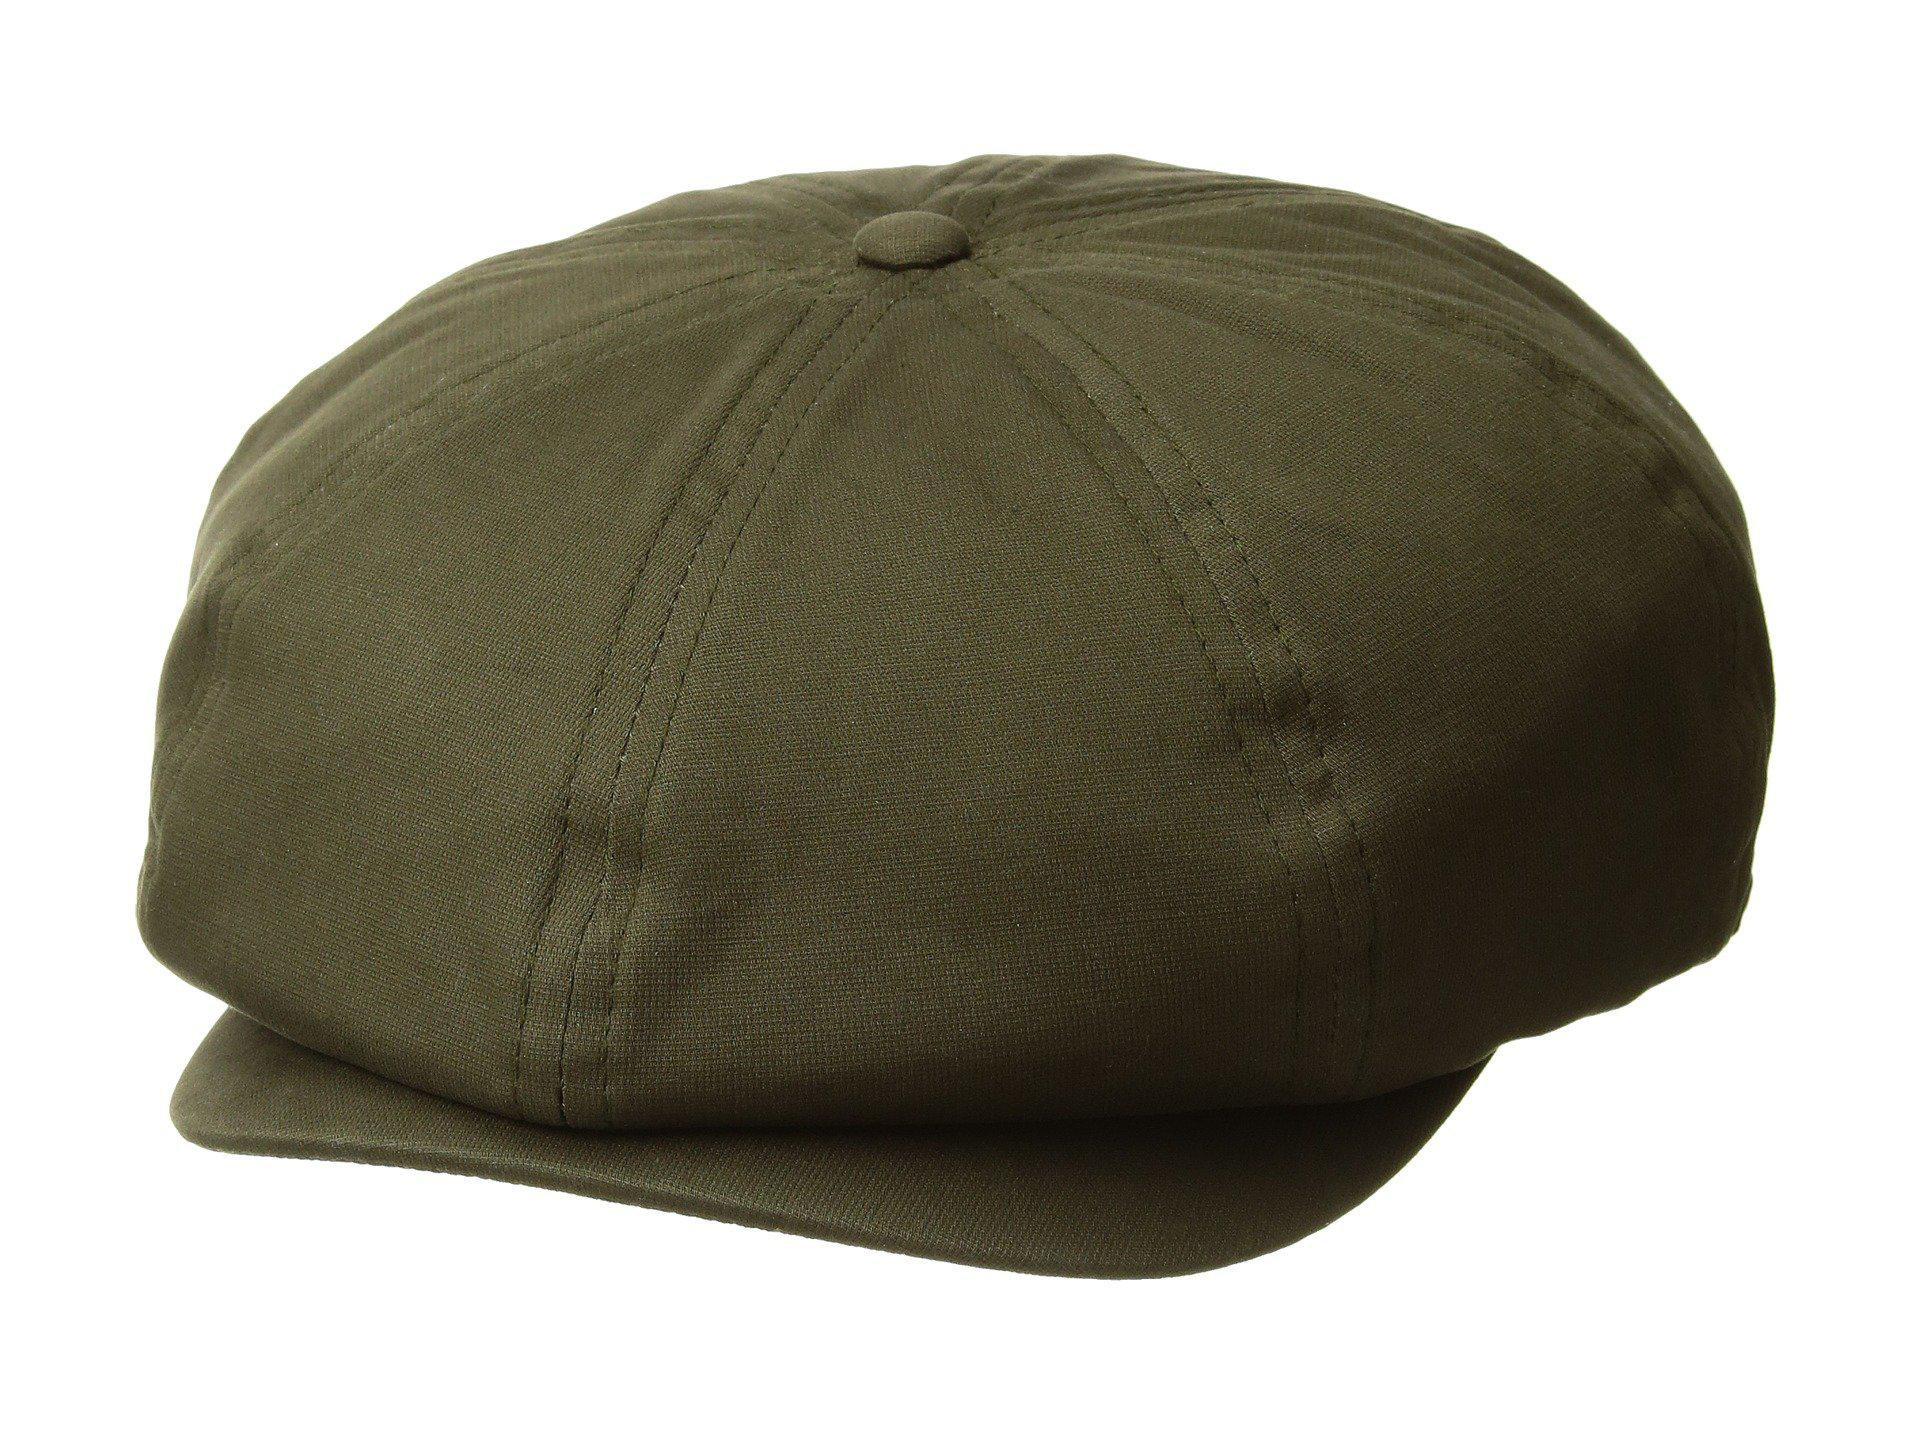 940d9e47a12 Lyst - Brixton Brood Snap Cap (black Herringbone Twill) Caps in ...